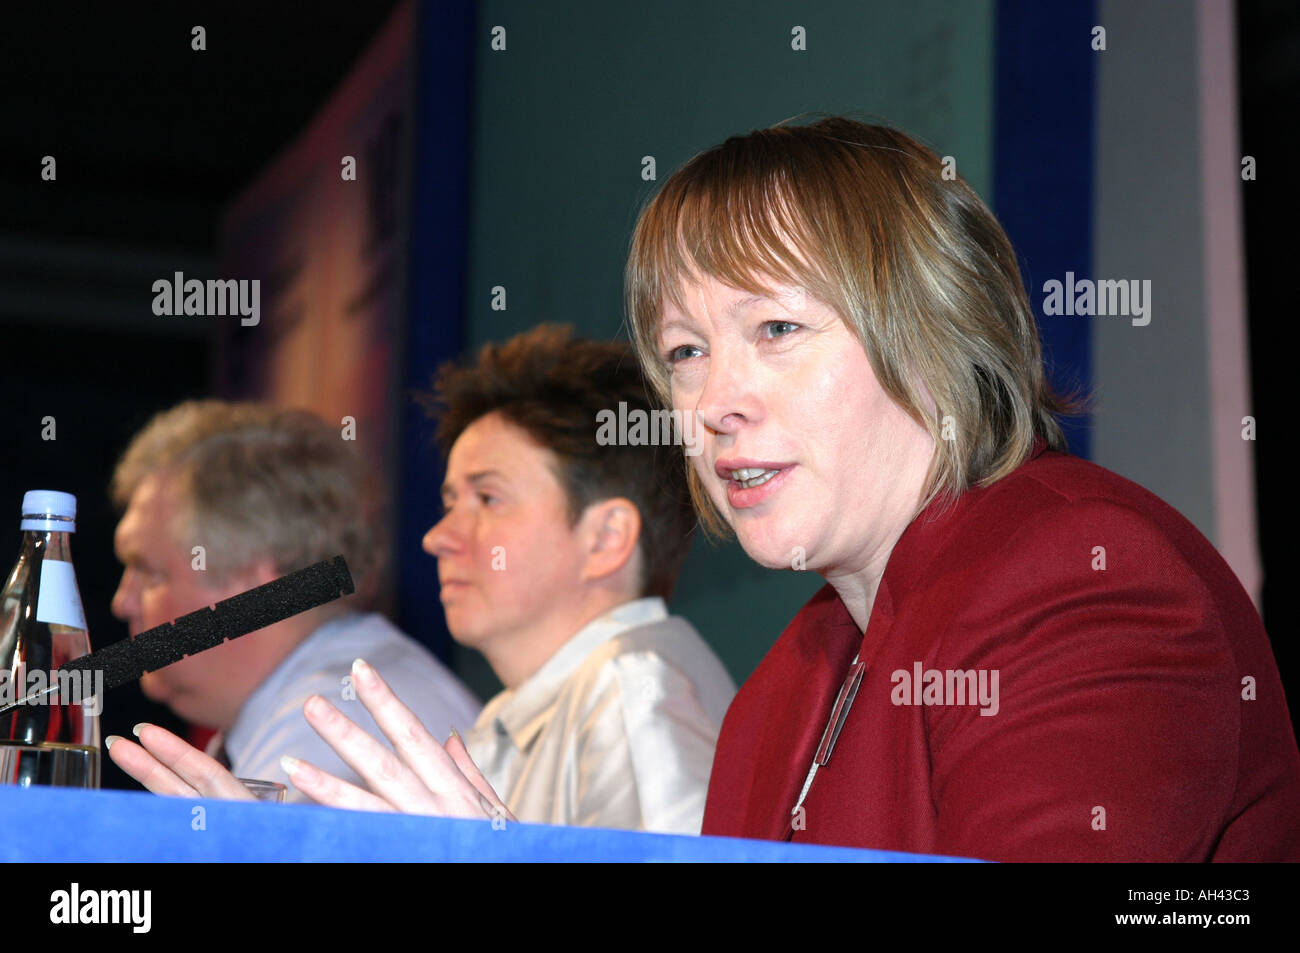 Maria Eagle Labour MP for Liverpool Garston UK Minister for Works and Pensions Speaking at a London Press Conference dec 2003 - Stock Image